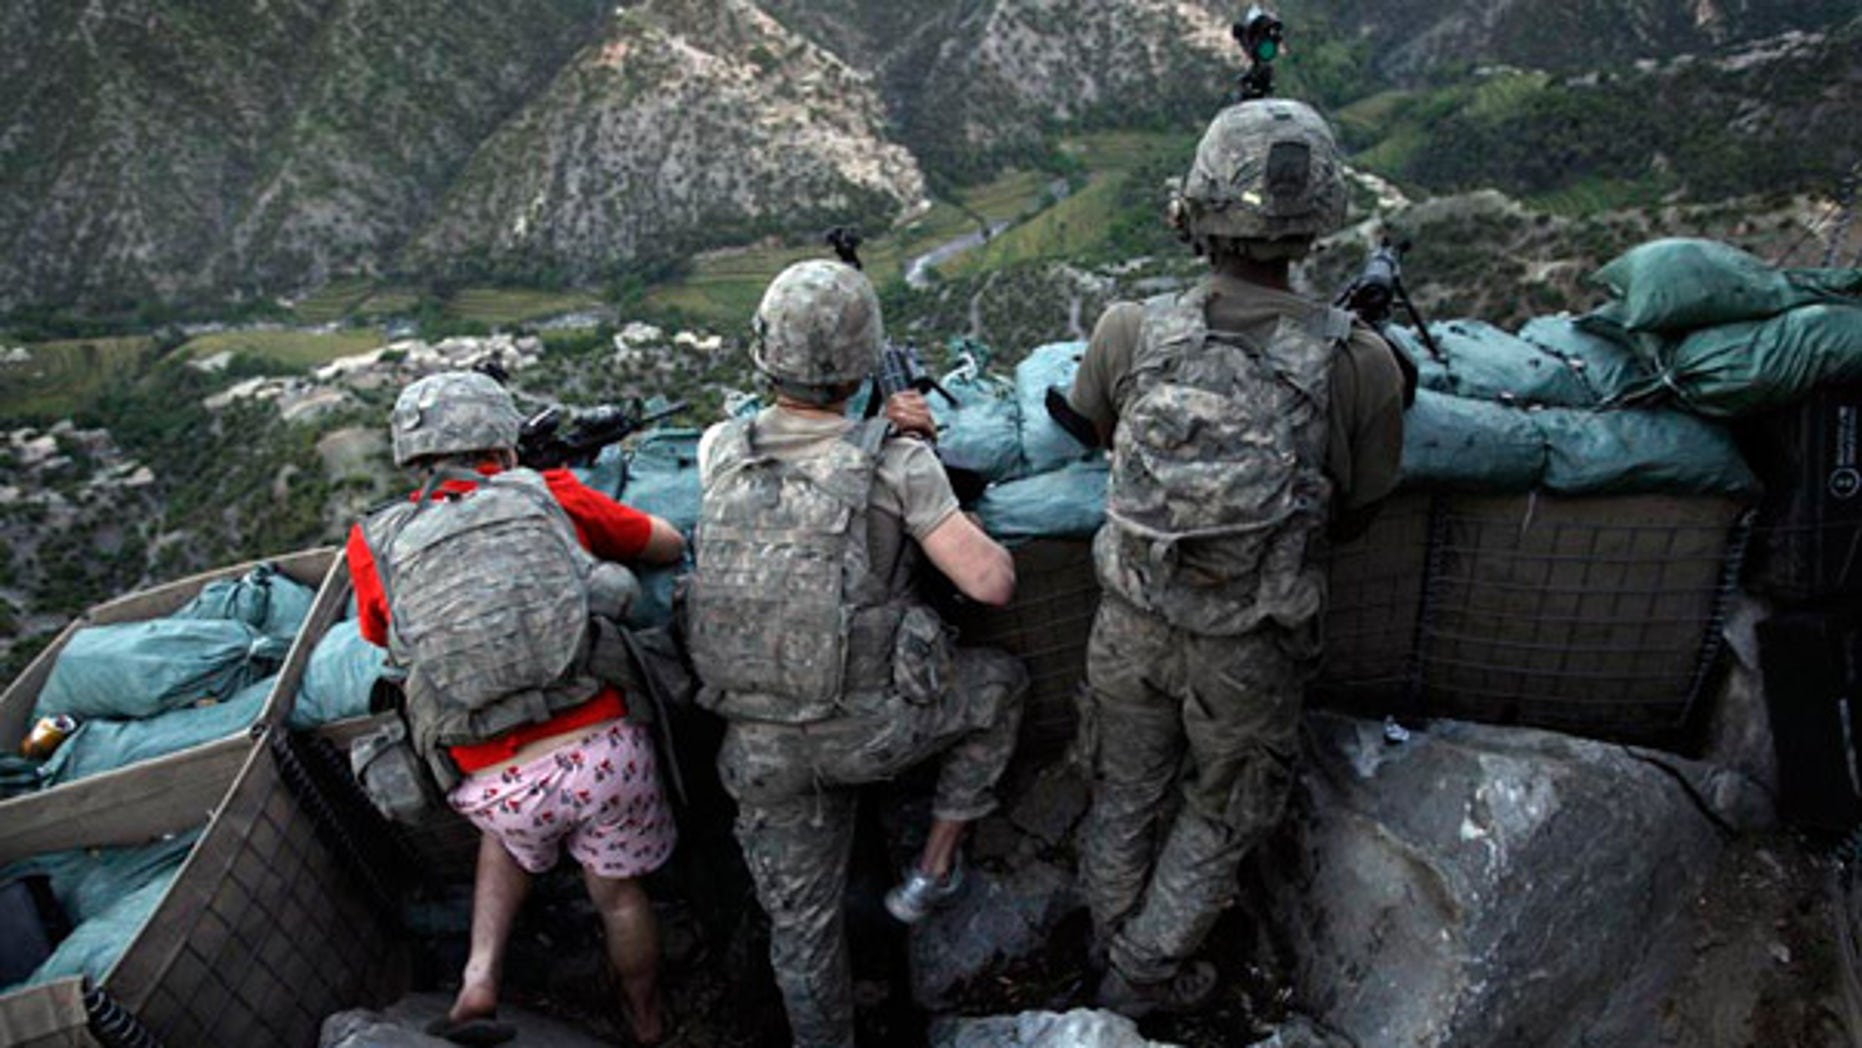 May 11 2009: U.S. soldiers responded to Taliban fire outside their bunker in Korengal Valley, Afghanistan.